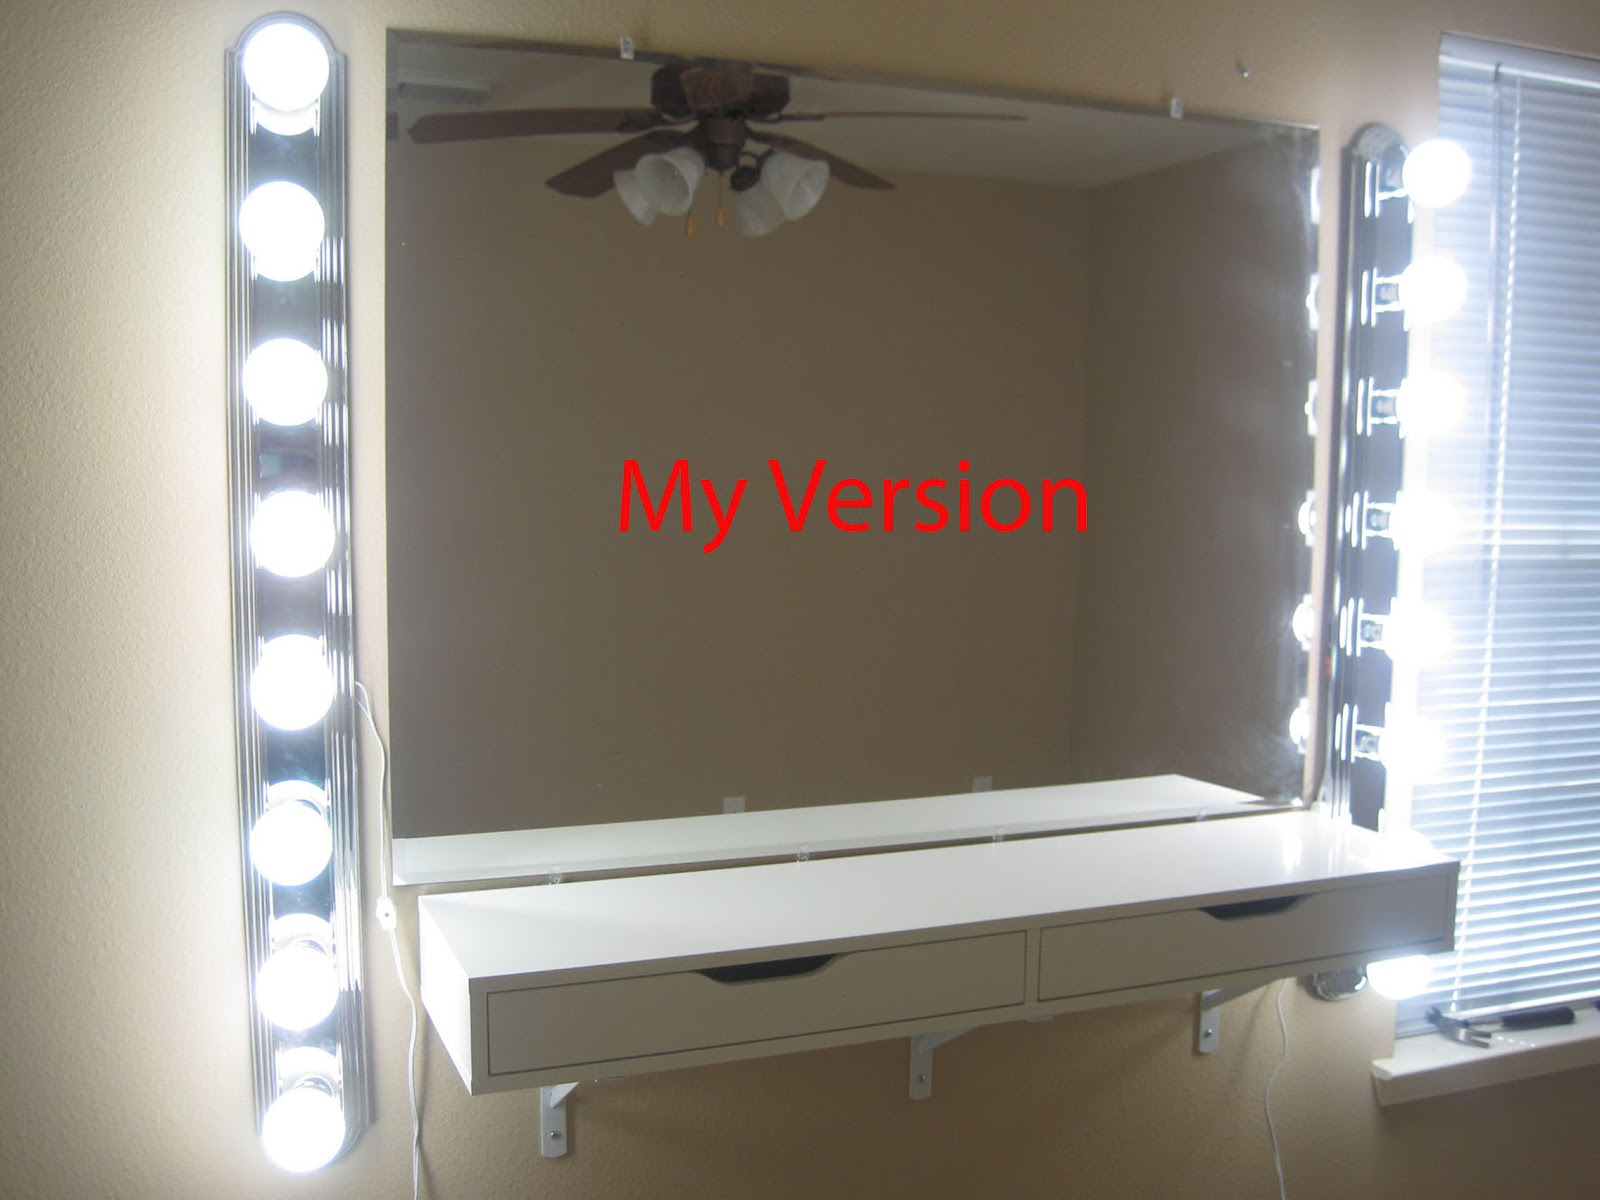 Vanity Mirror With Lights How To Make : chabz: DIY: Vanity Mirror and Lights